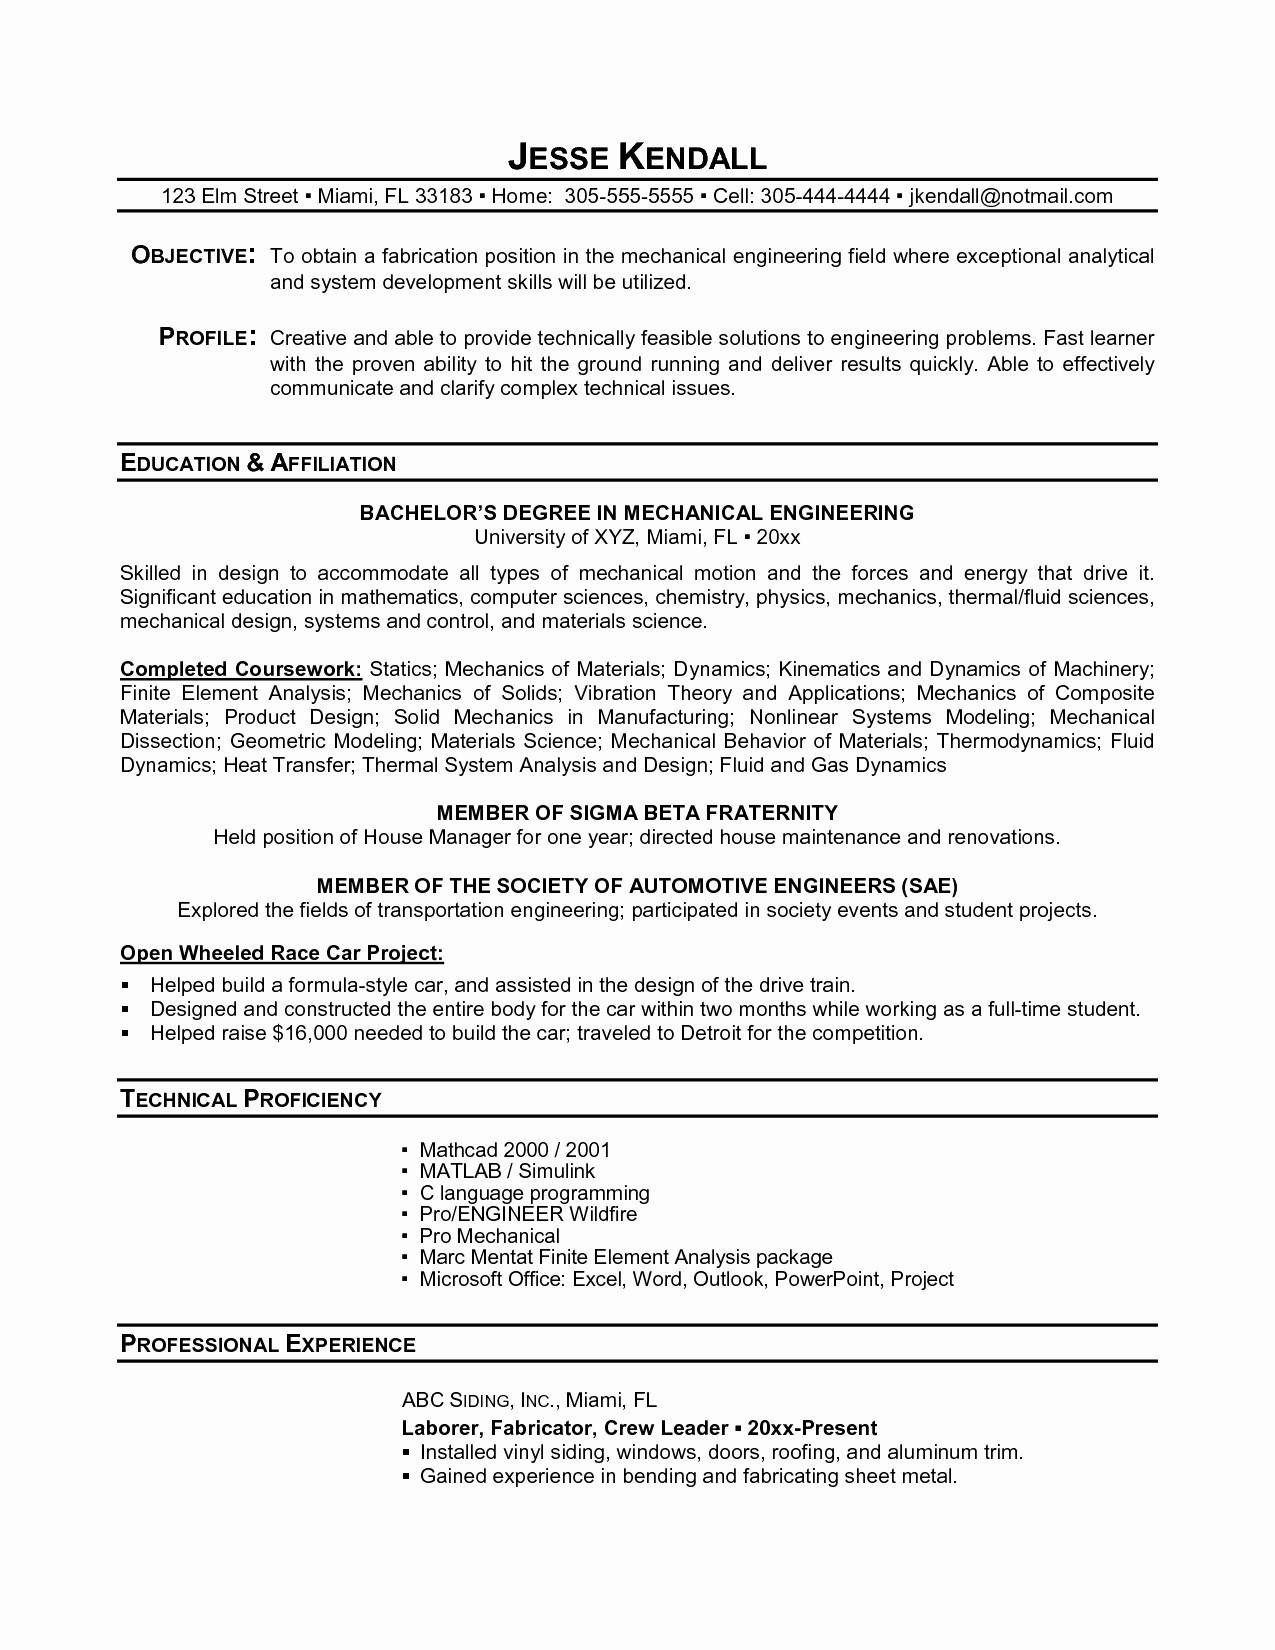 12 Top Mechanical Engineer Resume Sample for Graphics